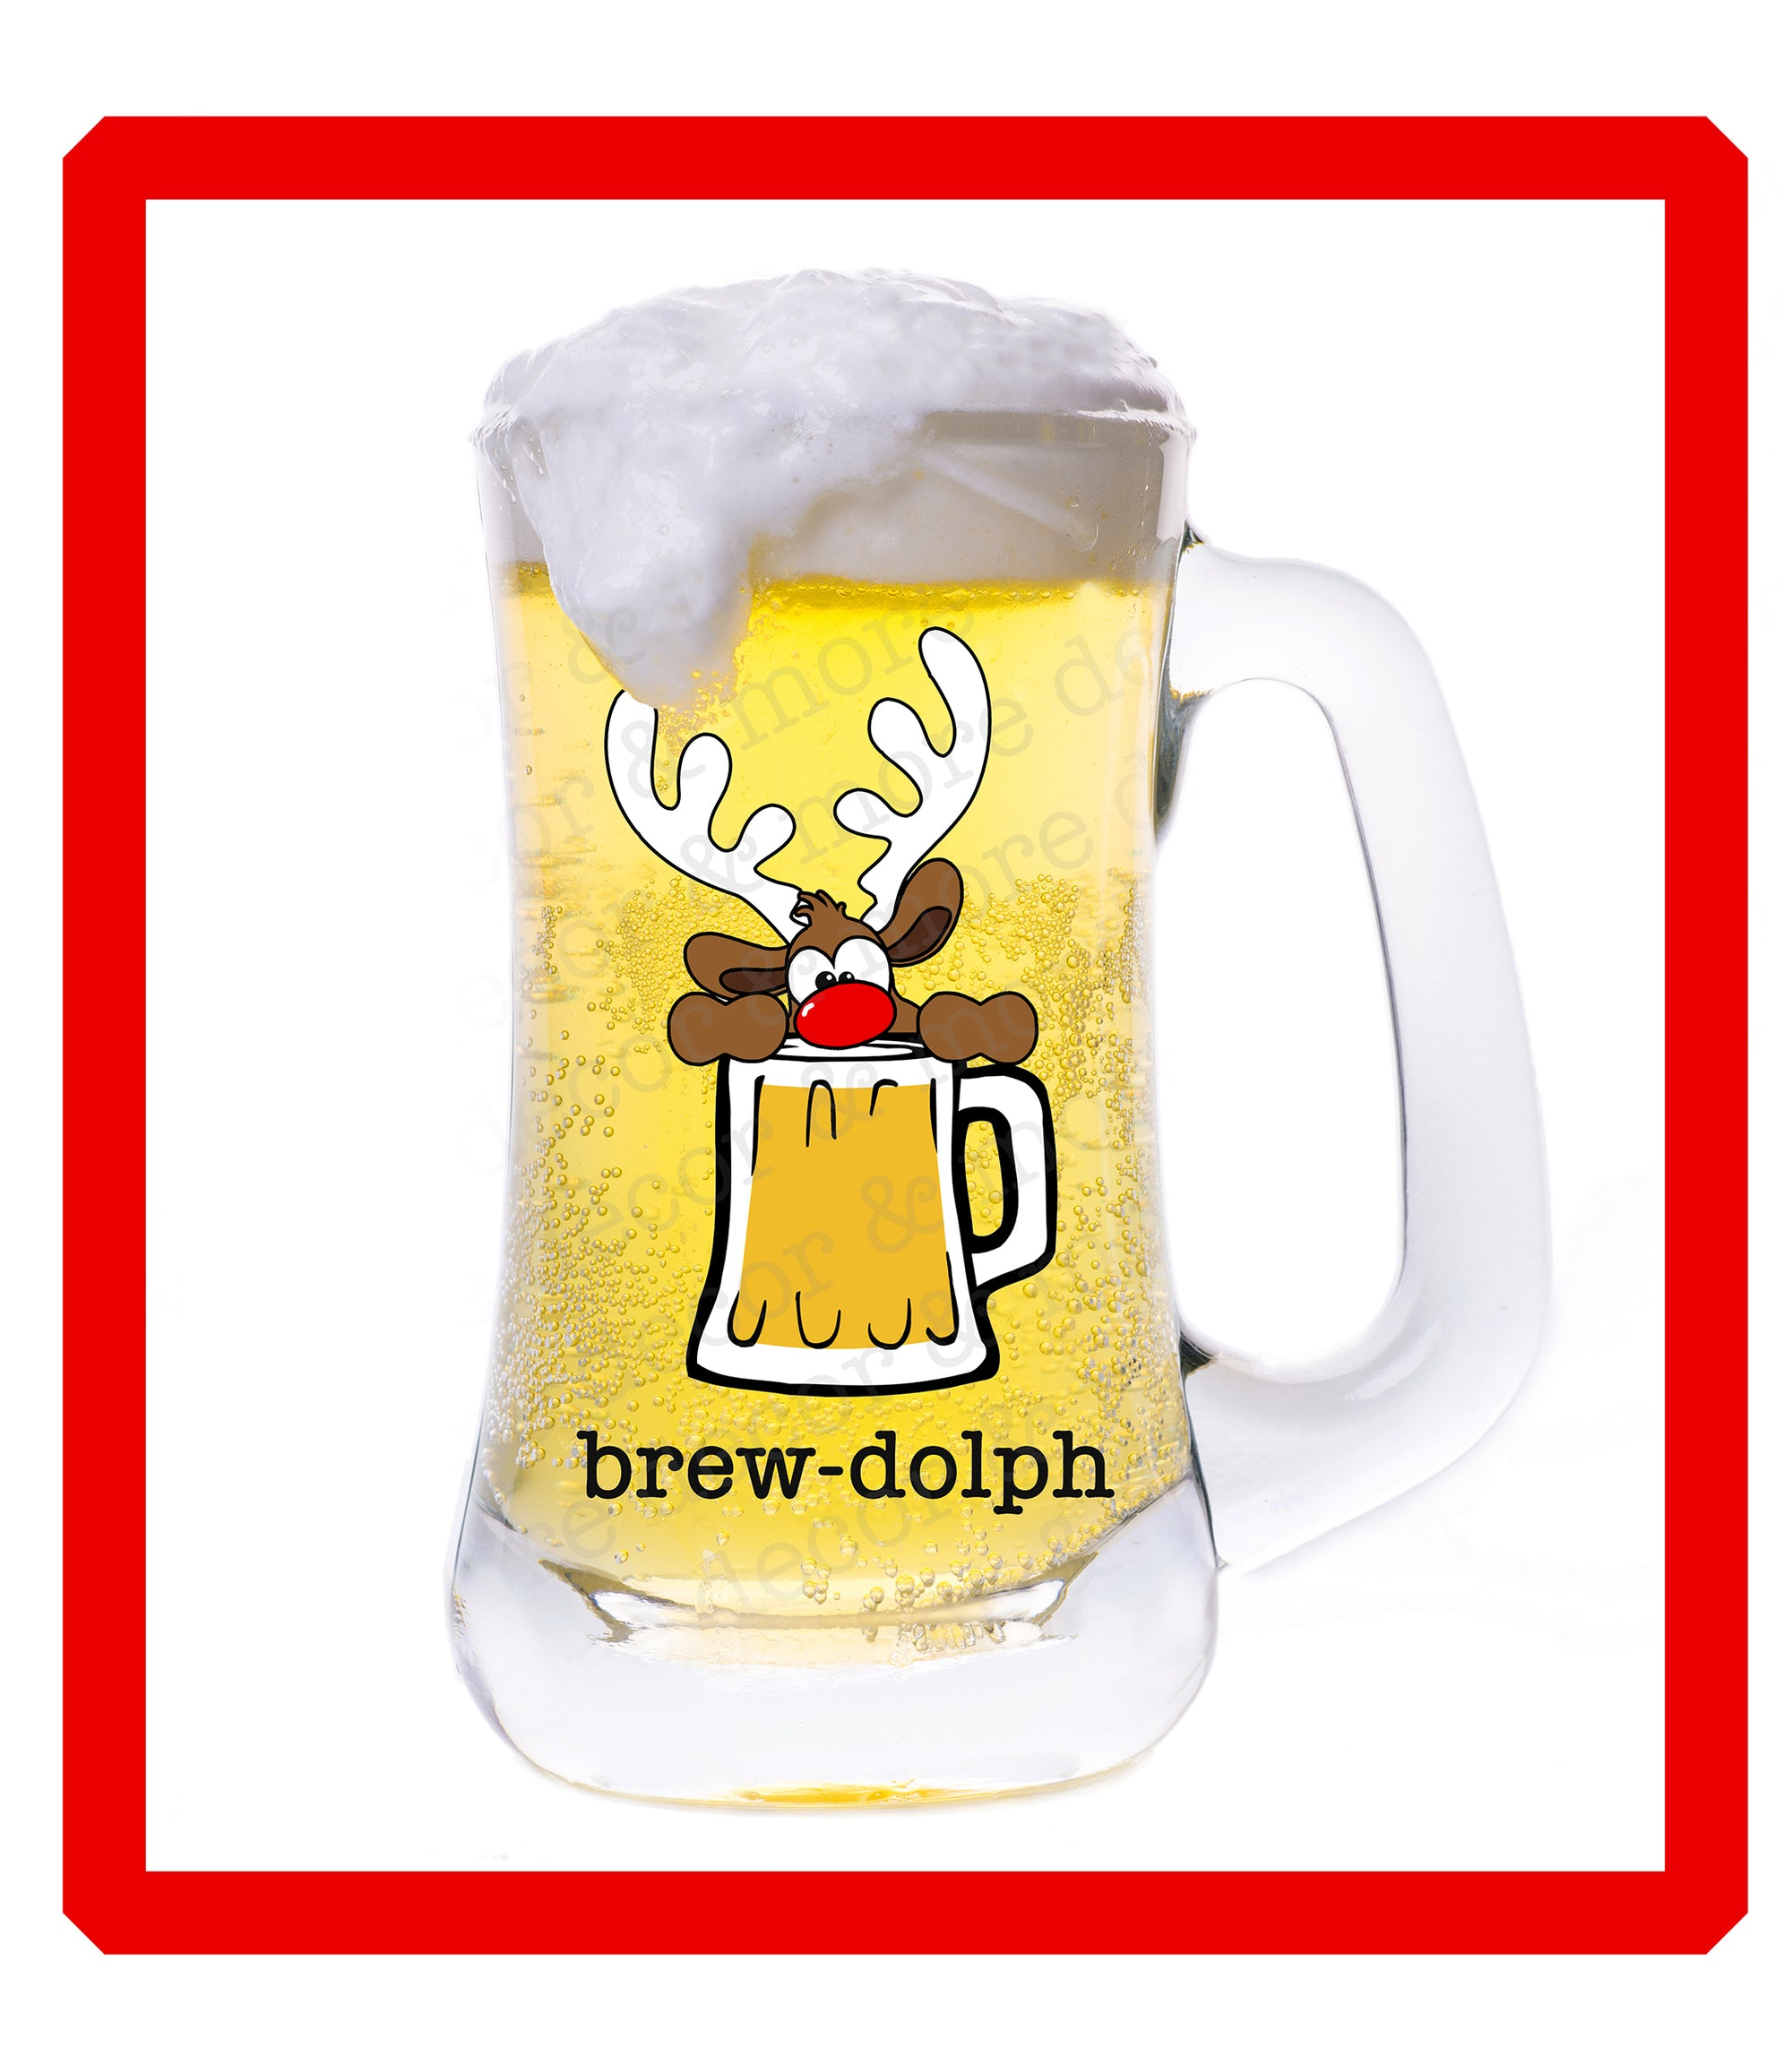 Reindeer SVG File, Funny Christmas SVG File, Brew-dolph SVG File, Beer Mug Svg Files for Cricut